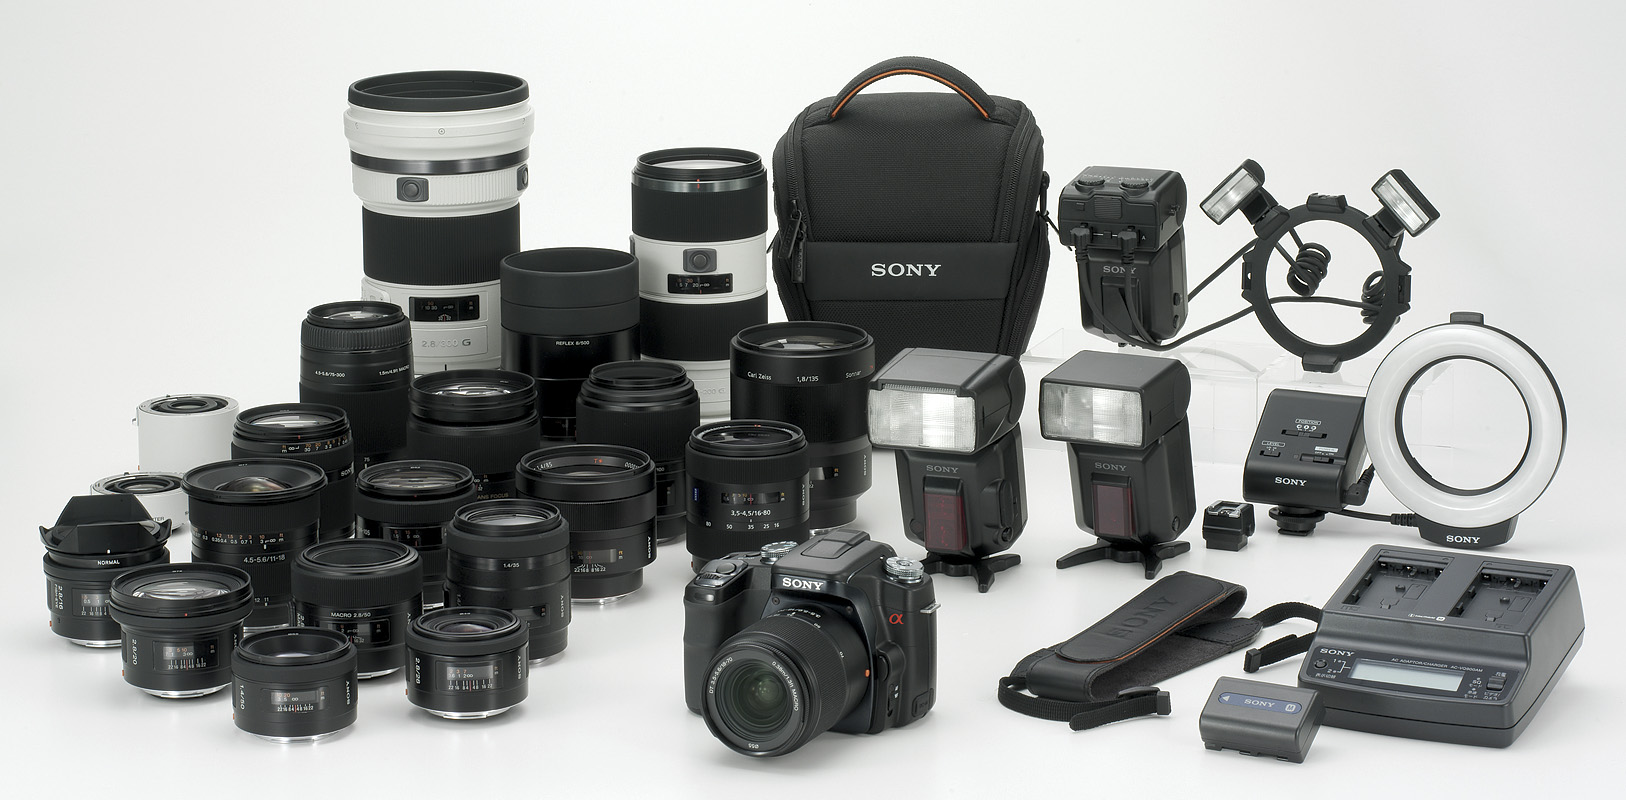 Camera Sony A100 Dslr Camera sony dslr a100 review full alpha system this image shows most of the main elements that will be available year including rapid chargers and flash